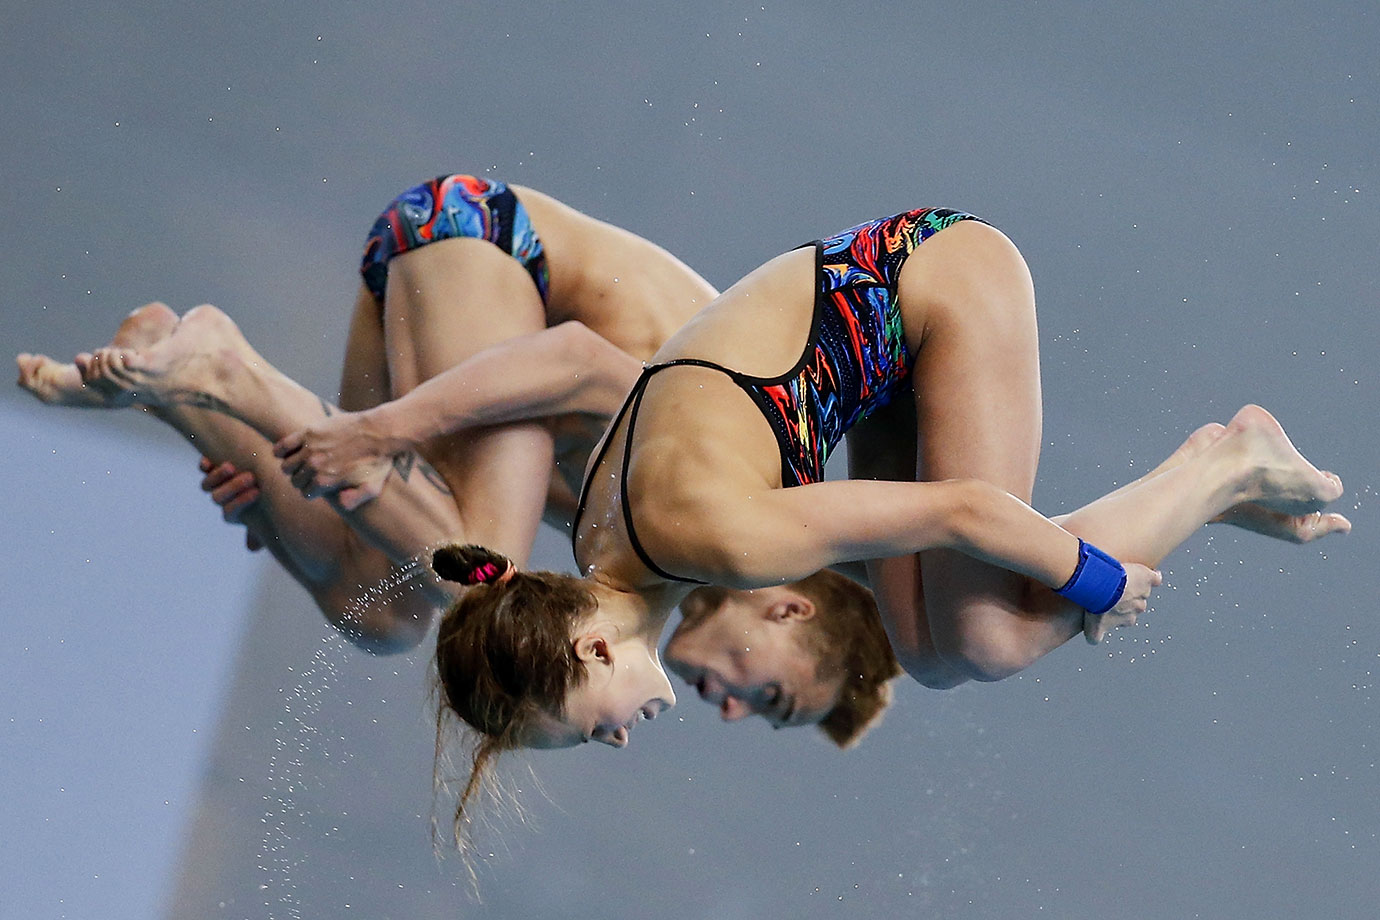 Nikita Shleikher and Yulia Timoshinina of Russia compete in the Mixed 10m Synchro Final during day three of the FINA/NVC Diving World Series in Beijing, China.